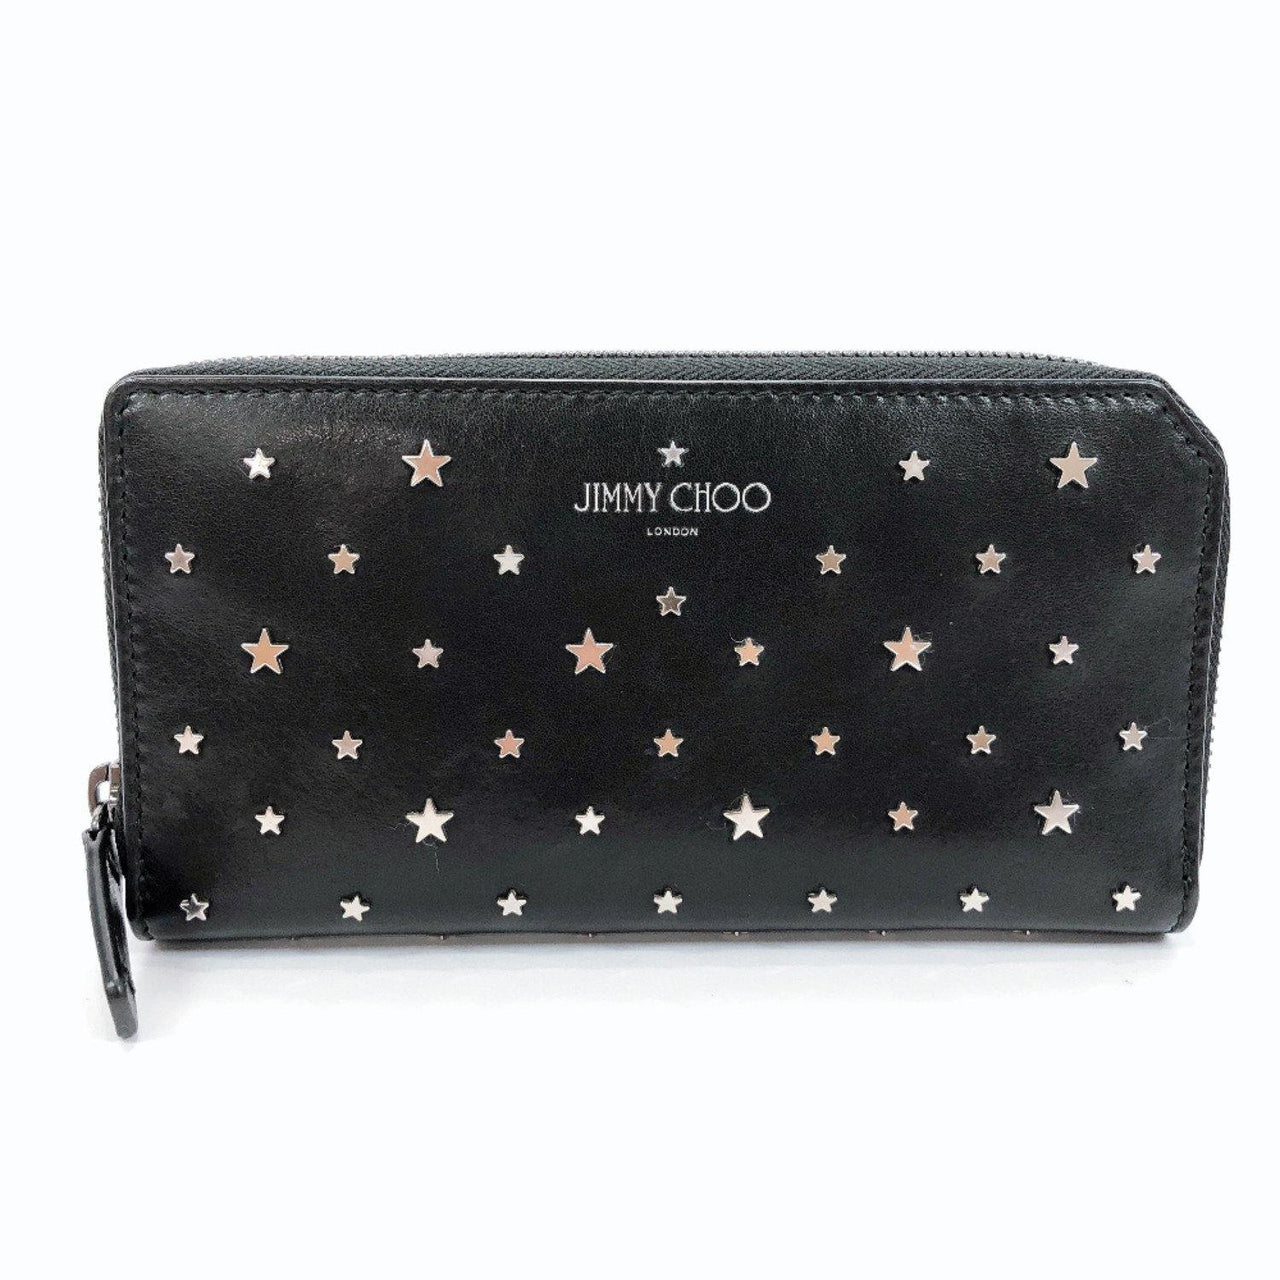 JIMMY CHOO purse Zip Around ABIKO Flat star studs leather rack Women Used - JP-BRANDS.com